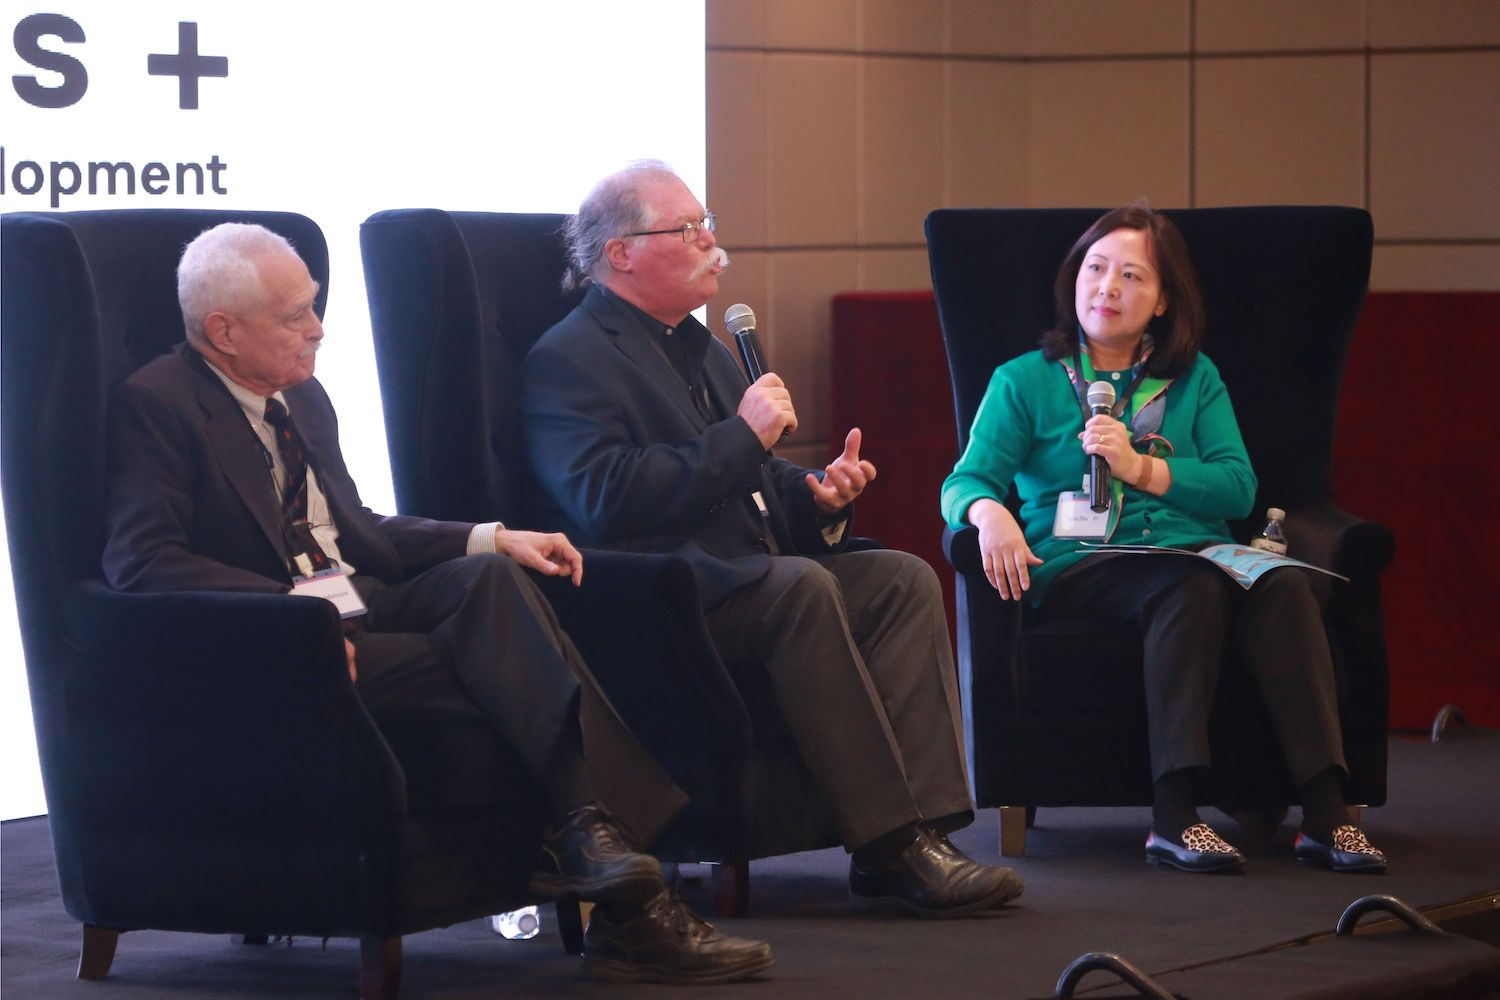 At the second annual Liberal Arts + forum in Beijing on Oct. 19, from left, Richard Adelstein, the Woodhouse/Sysco Professor of Economics, and Barry Chernoff, the Robert Schumann Professor of Environmental Studies, spoke on a panel moderated by Julia Zhu '91 about Wesleyan's unique interdisciplinary approach to teaching economics and environmental studies.